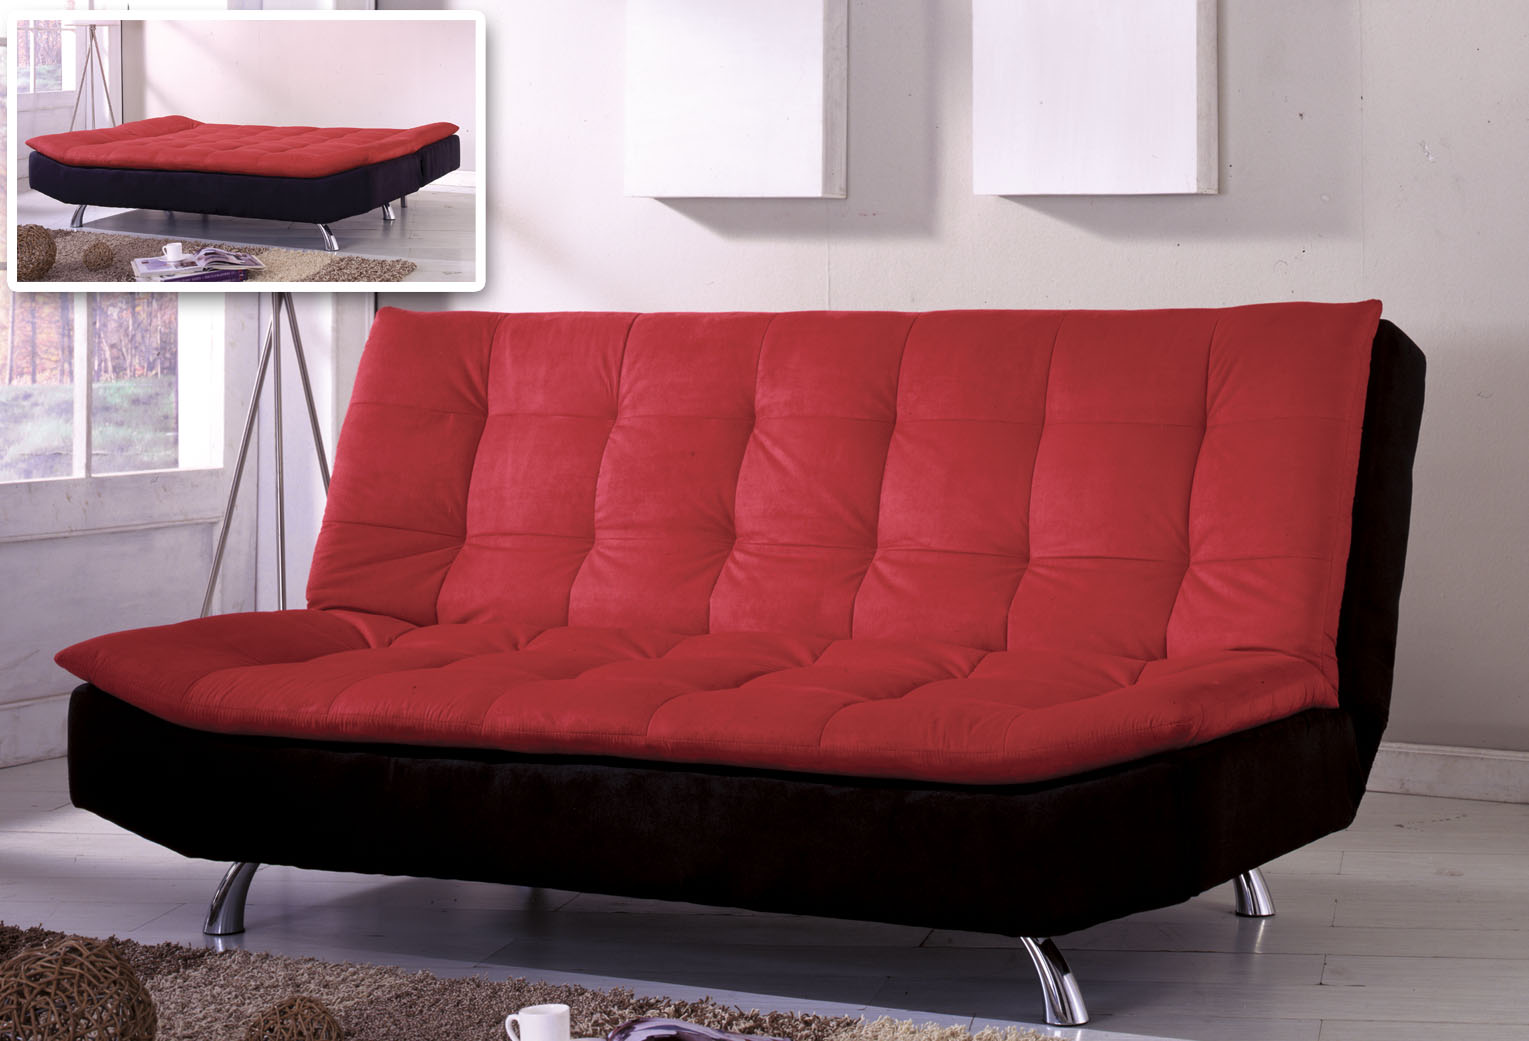 Futon couch bed 6451 Best couch beds